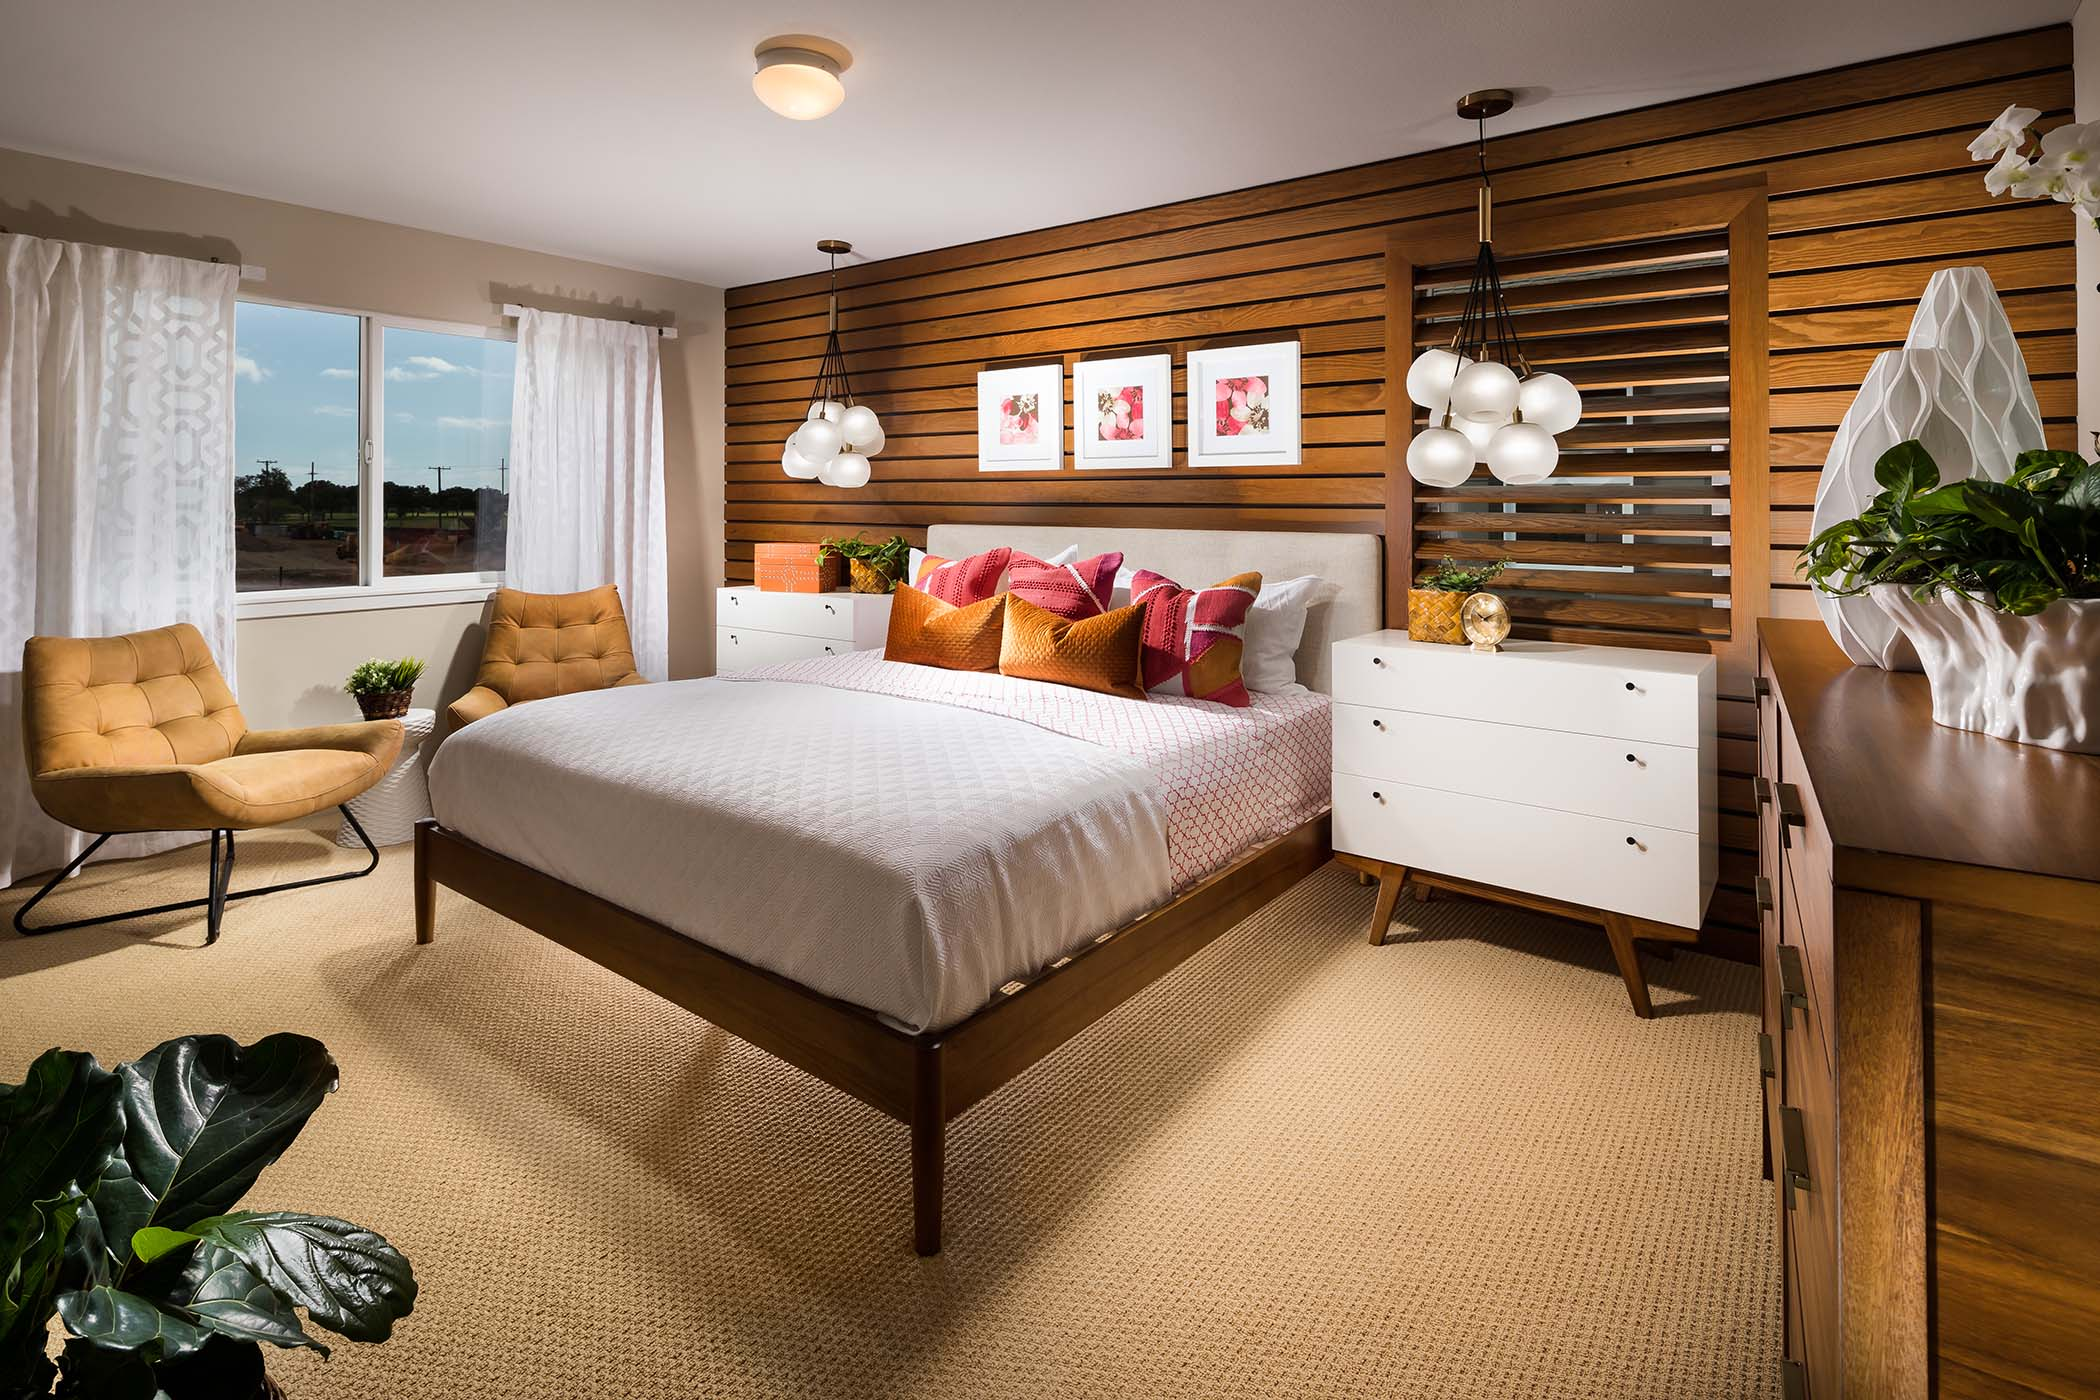 Seabridge Bedroom Rendering3